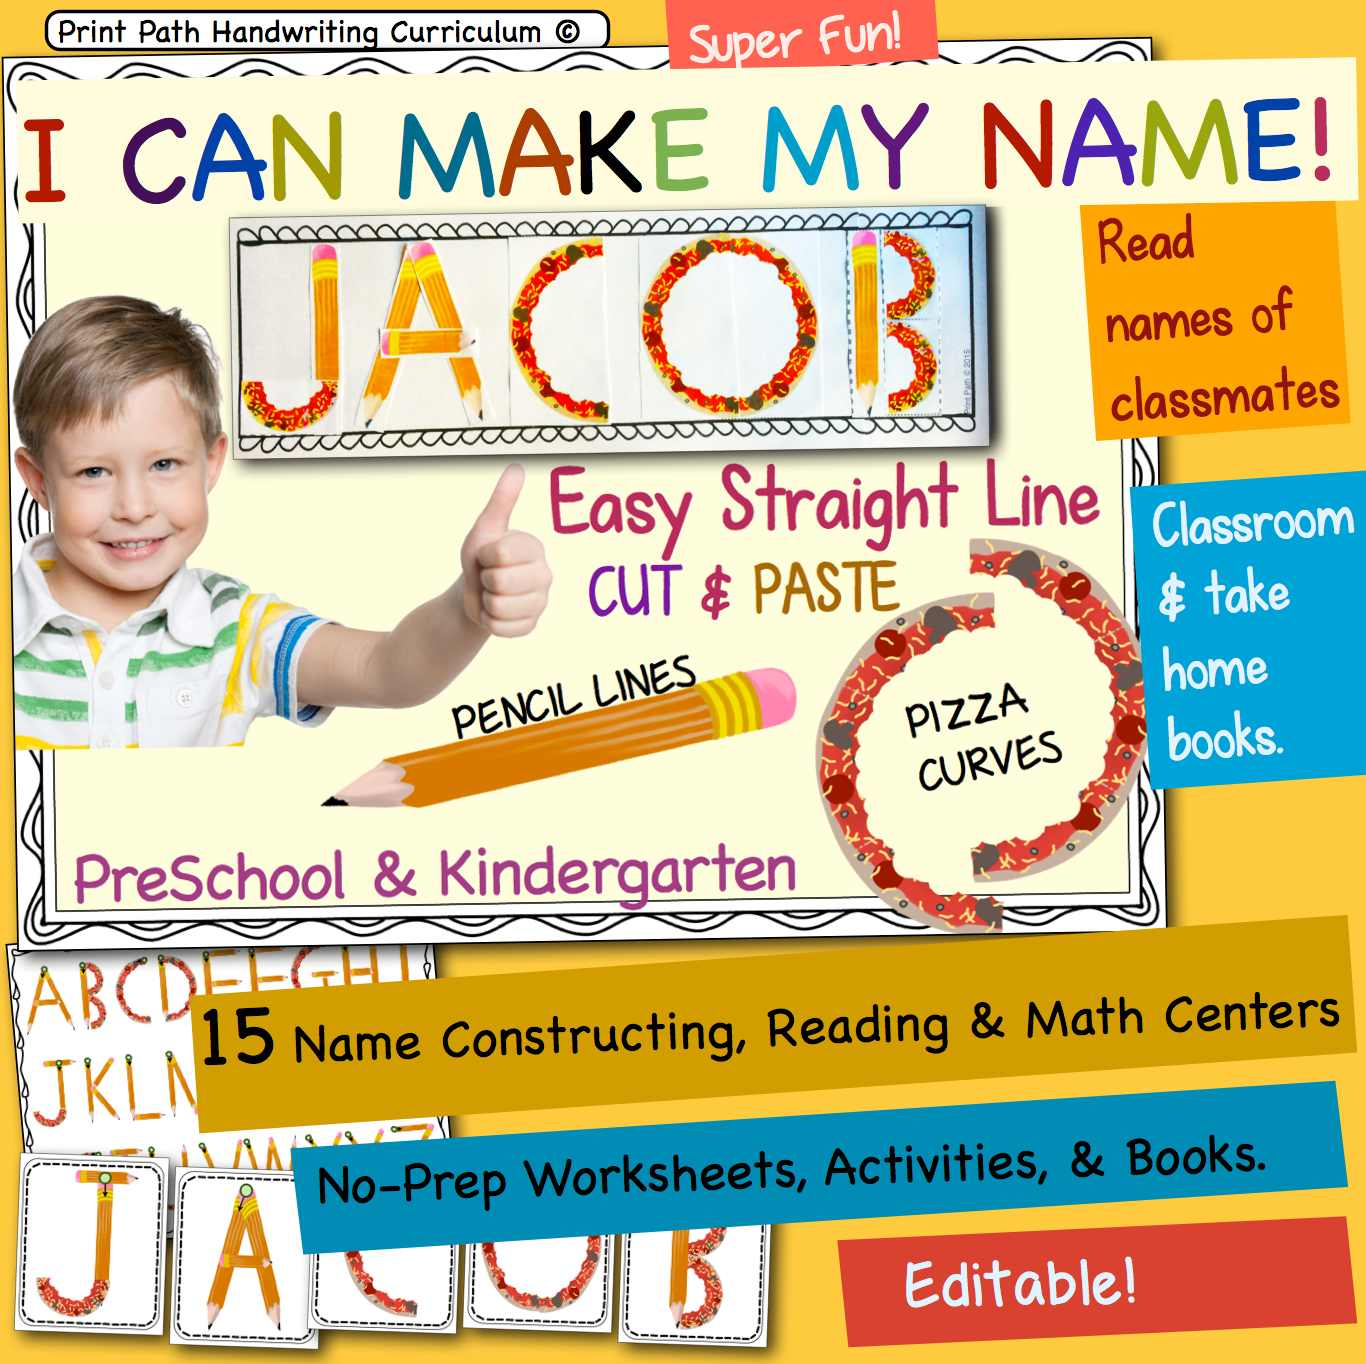 small resolution of Capitals First! by Print Path: Teaching Young Children to Write Their Names